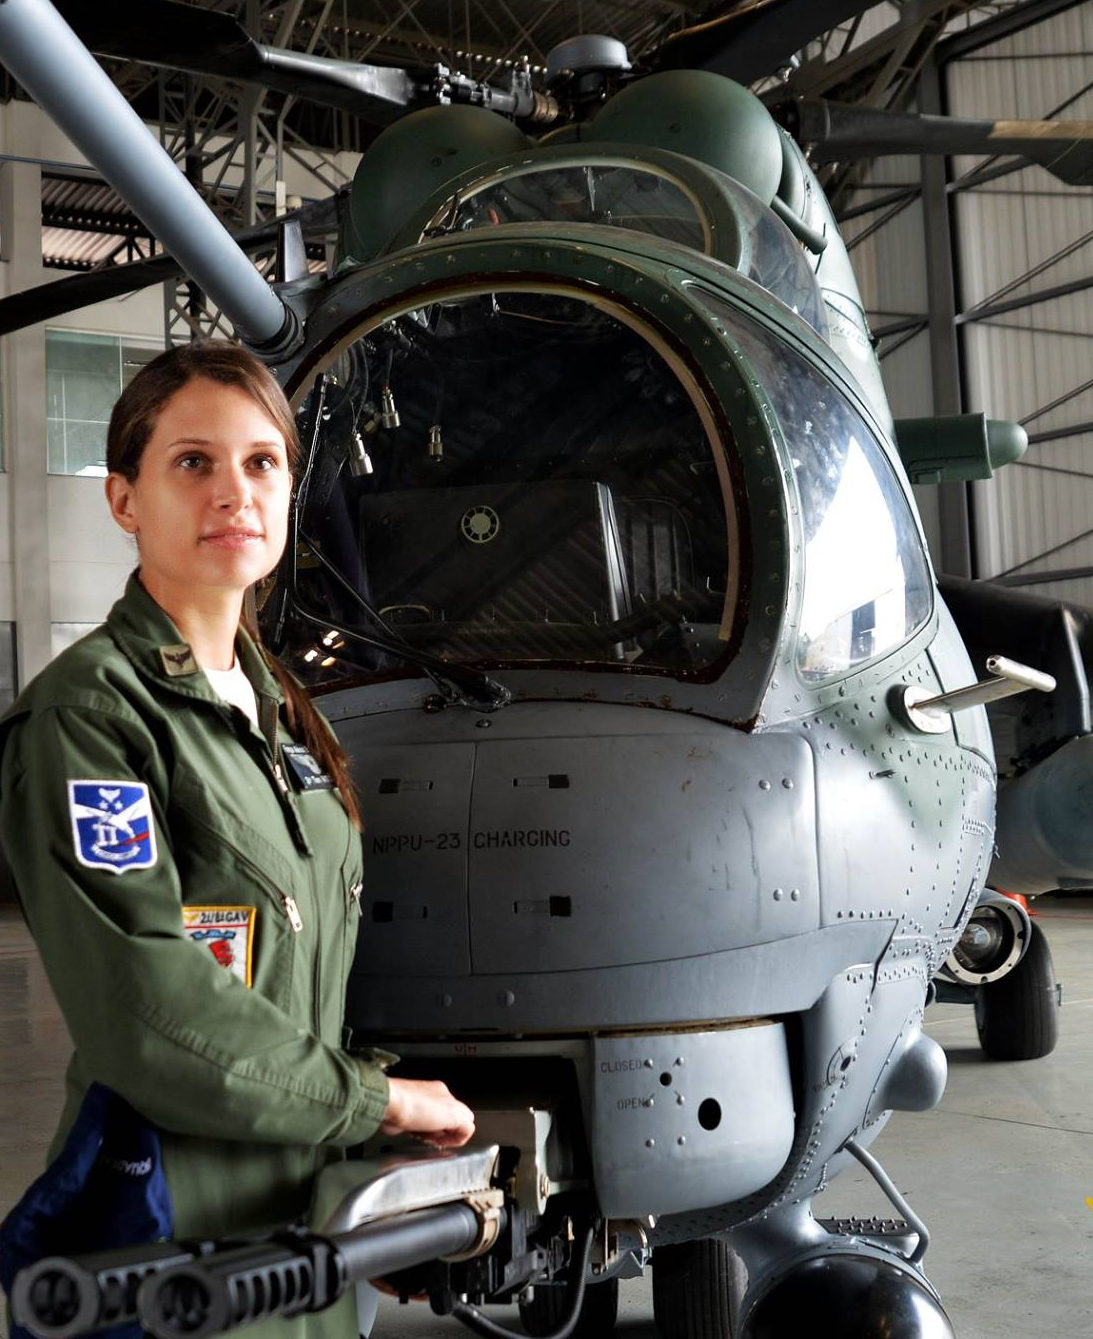 Female Pilot. Brazilian Air Force. Lt. Vitória Bernal.